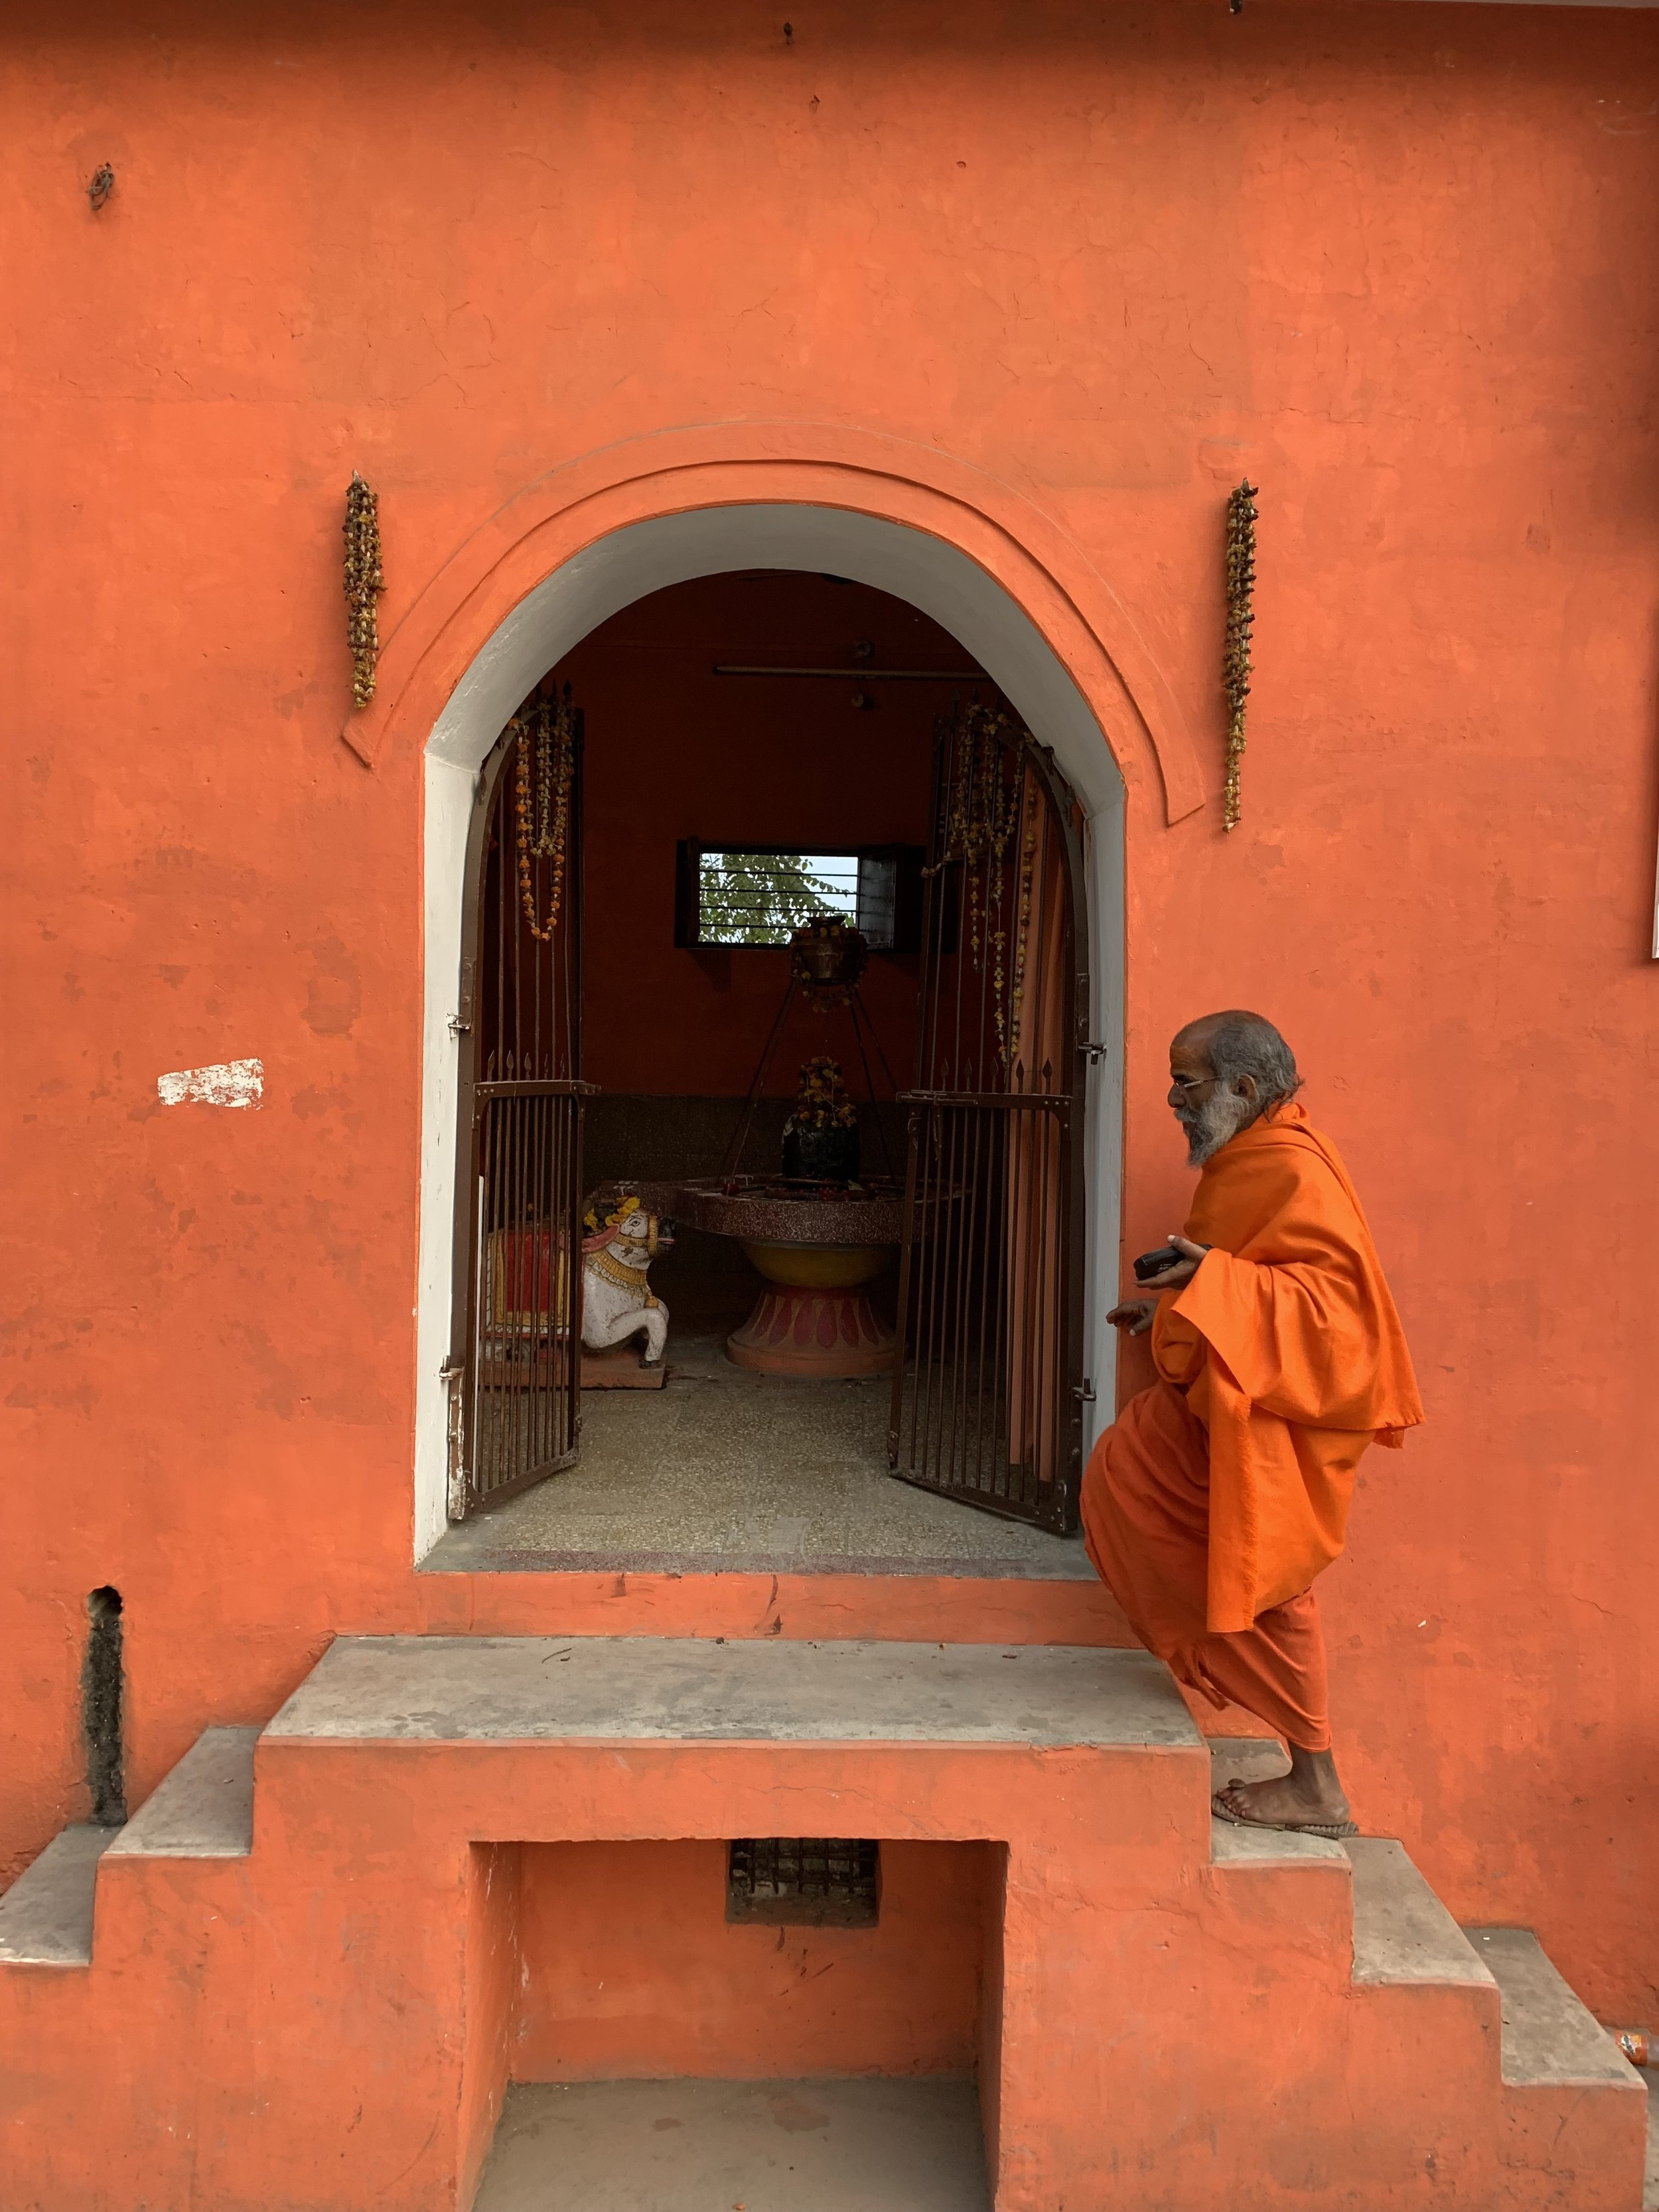 Guru enters a Hindu temple that he upkeeps.